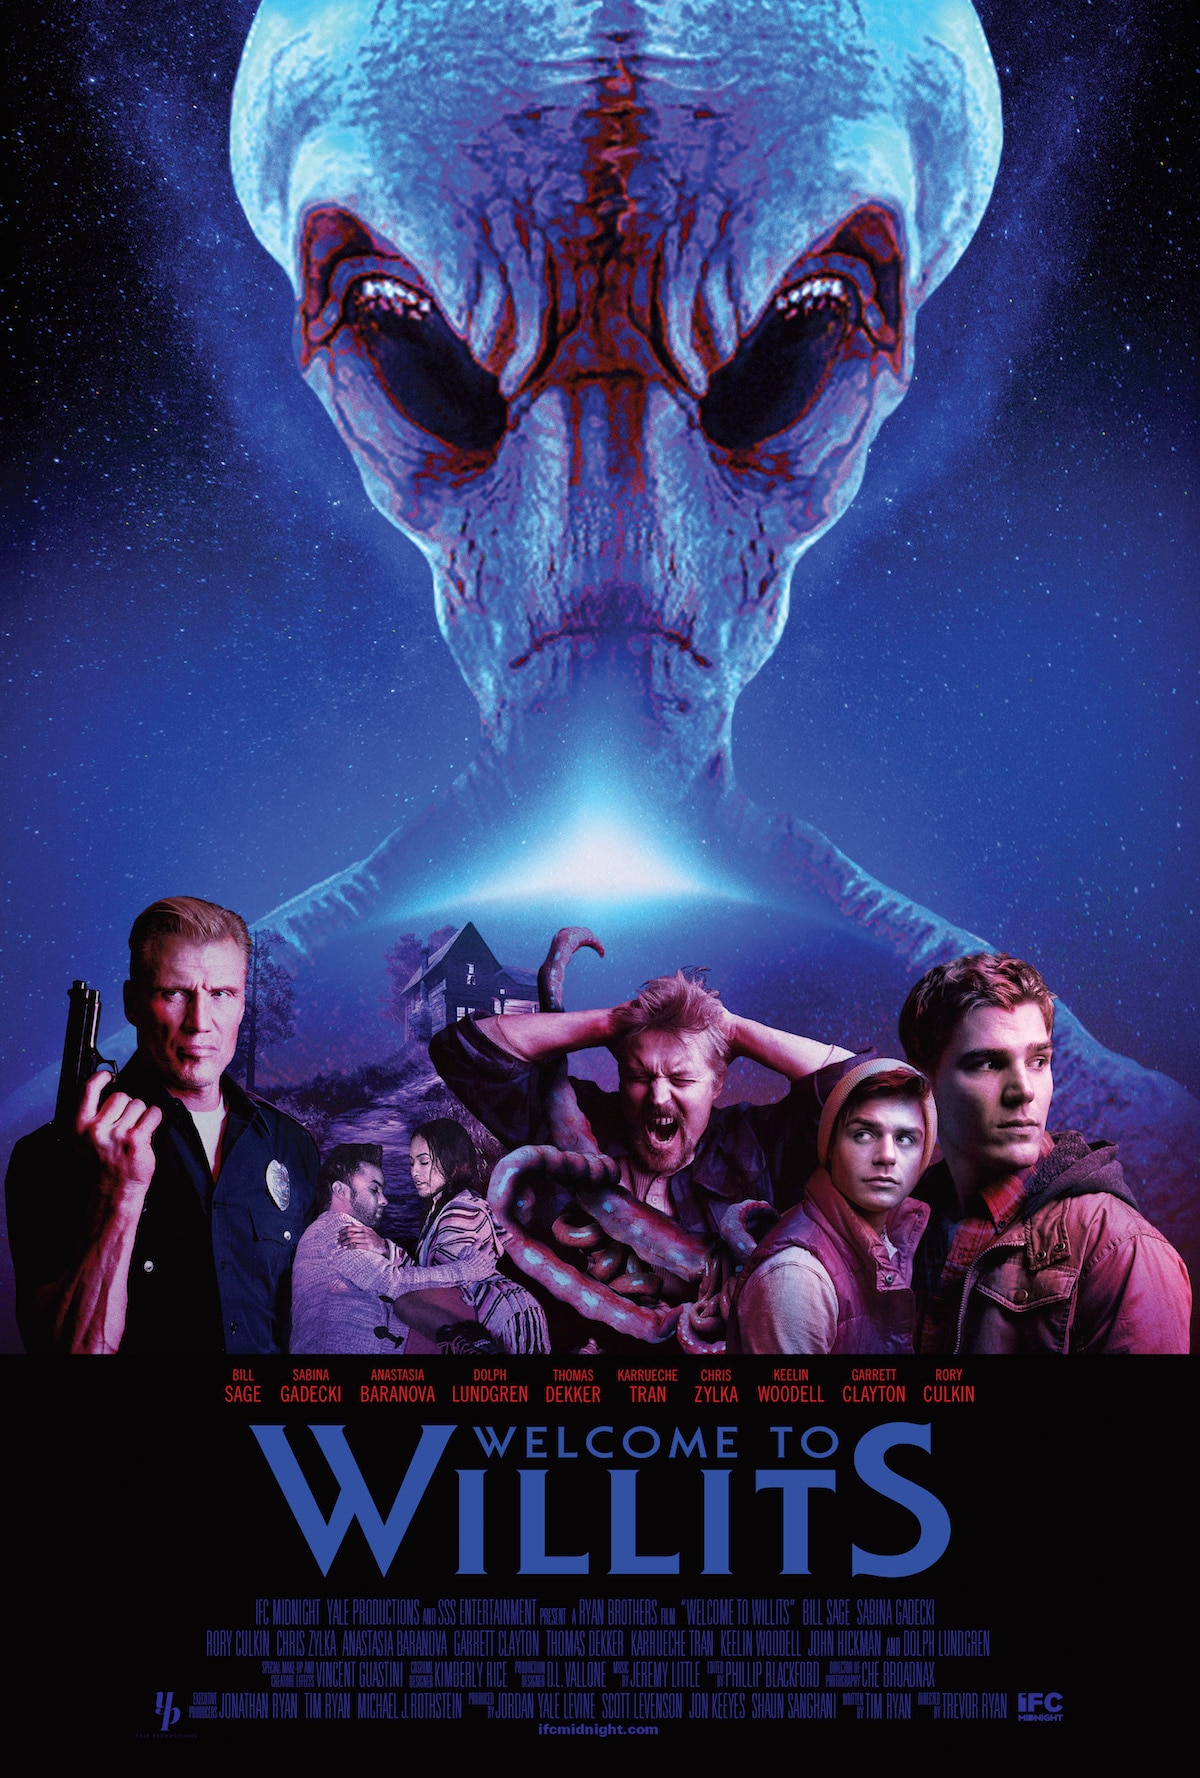 WELCOME TO WILLITS Official Poster IFC Midnight - Interview: Bill Sage Talks Welcome to Willits, Practical vs CGI, Hap and Leonard, and More!